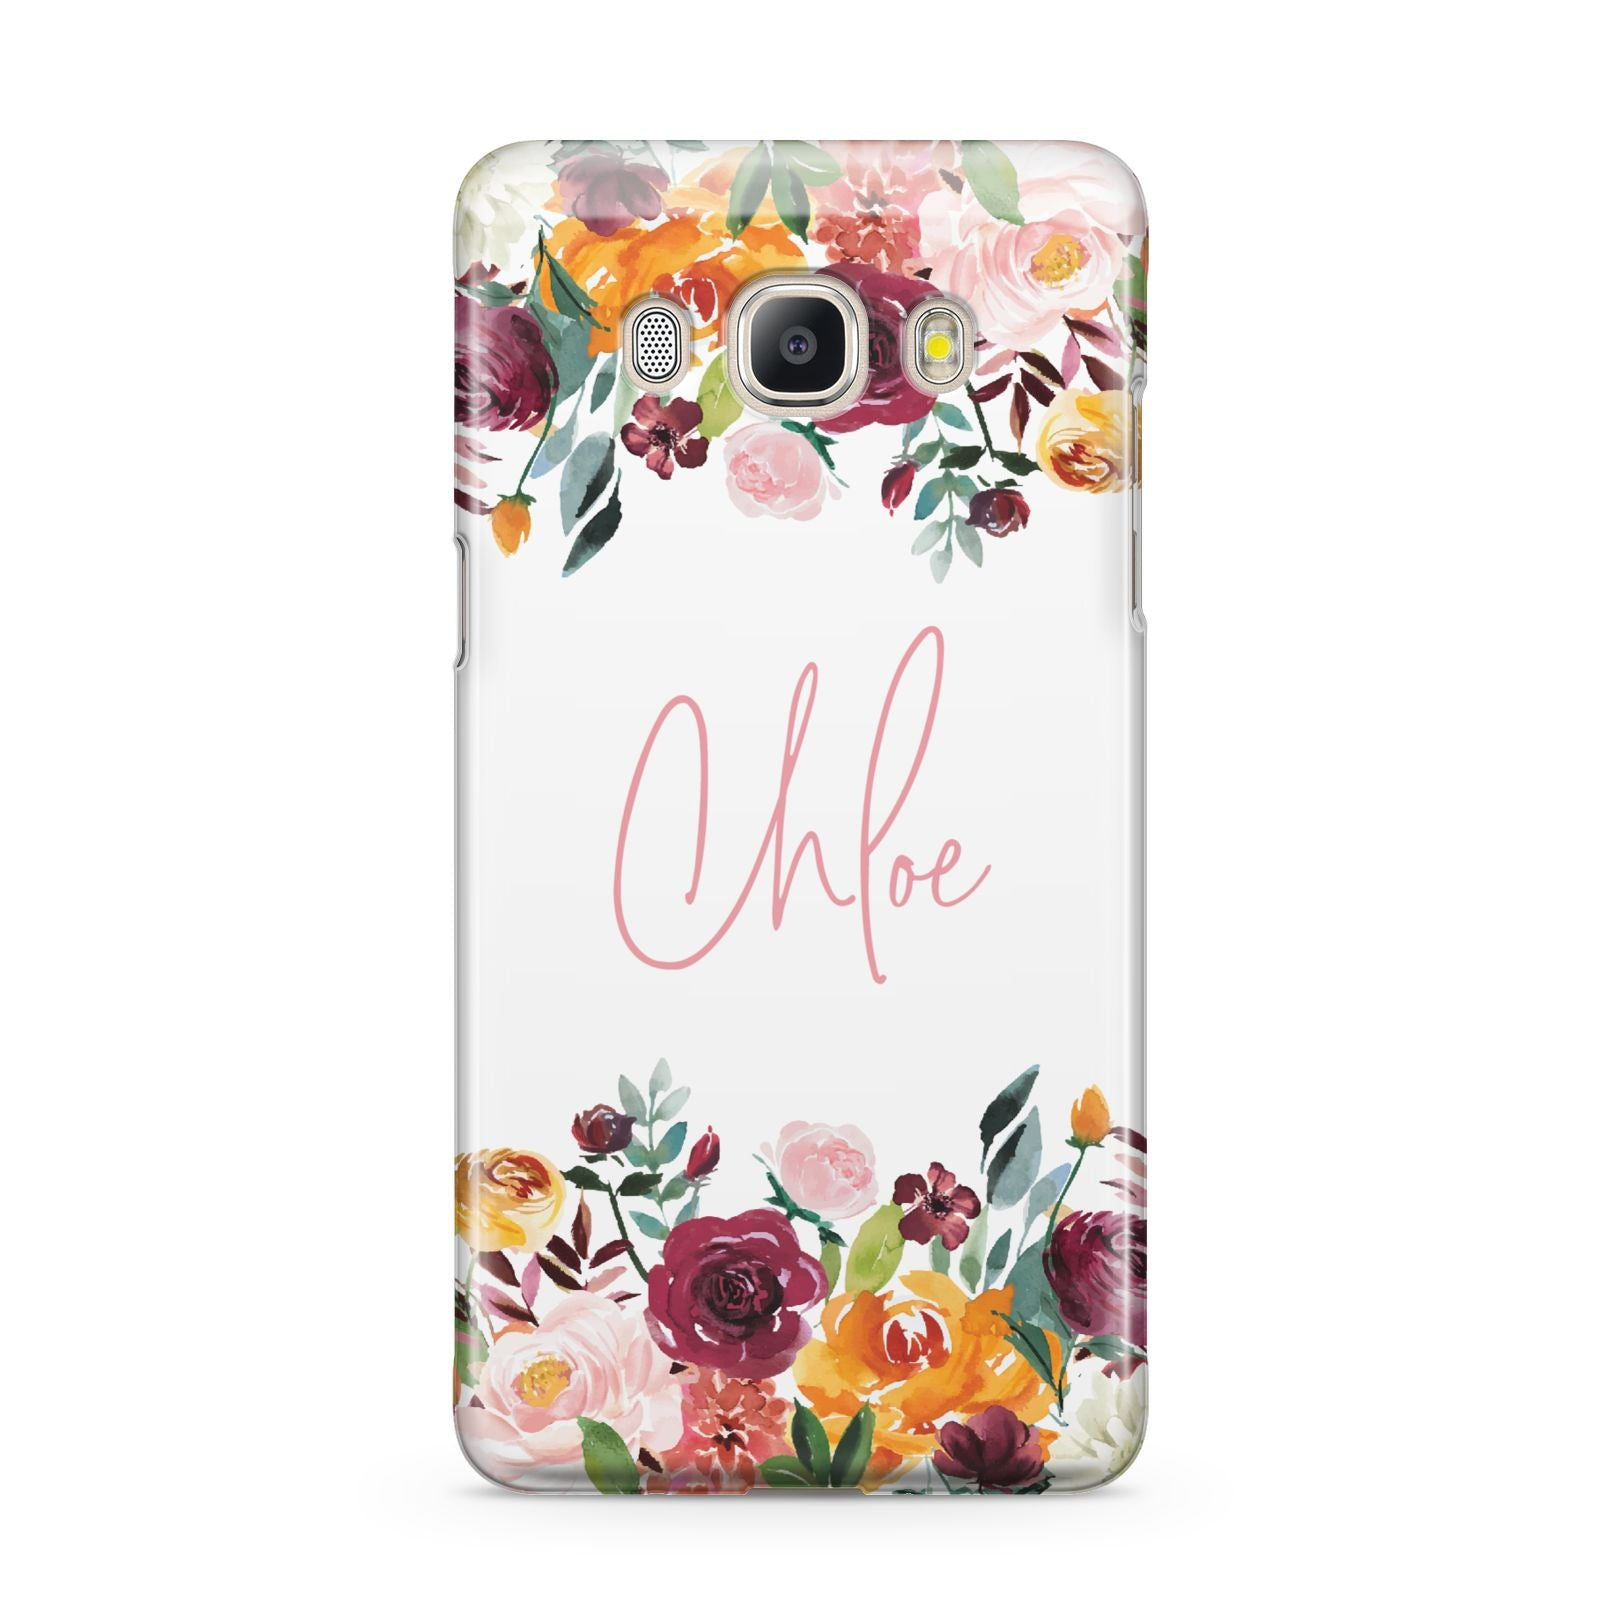 Personalised Name Transparent Flowers Samsung Galaxy J5 2016 Case